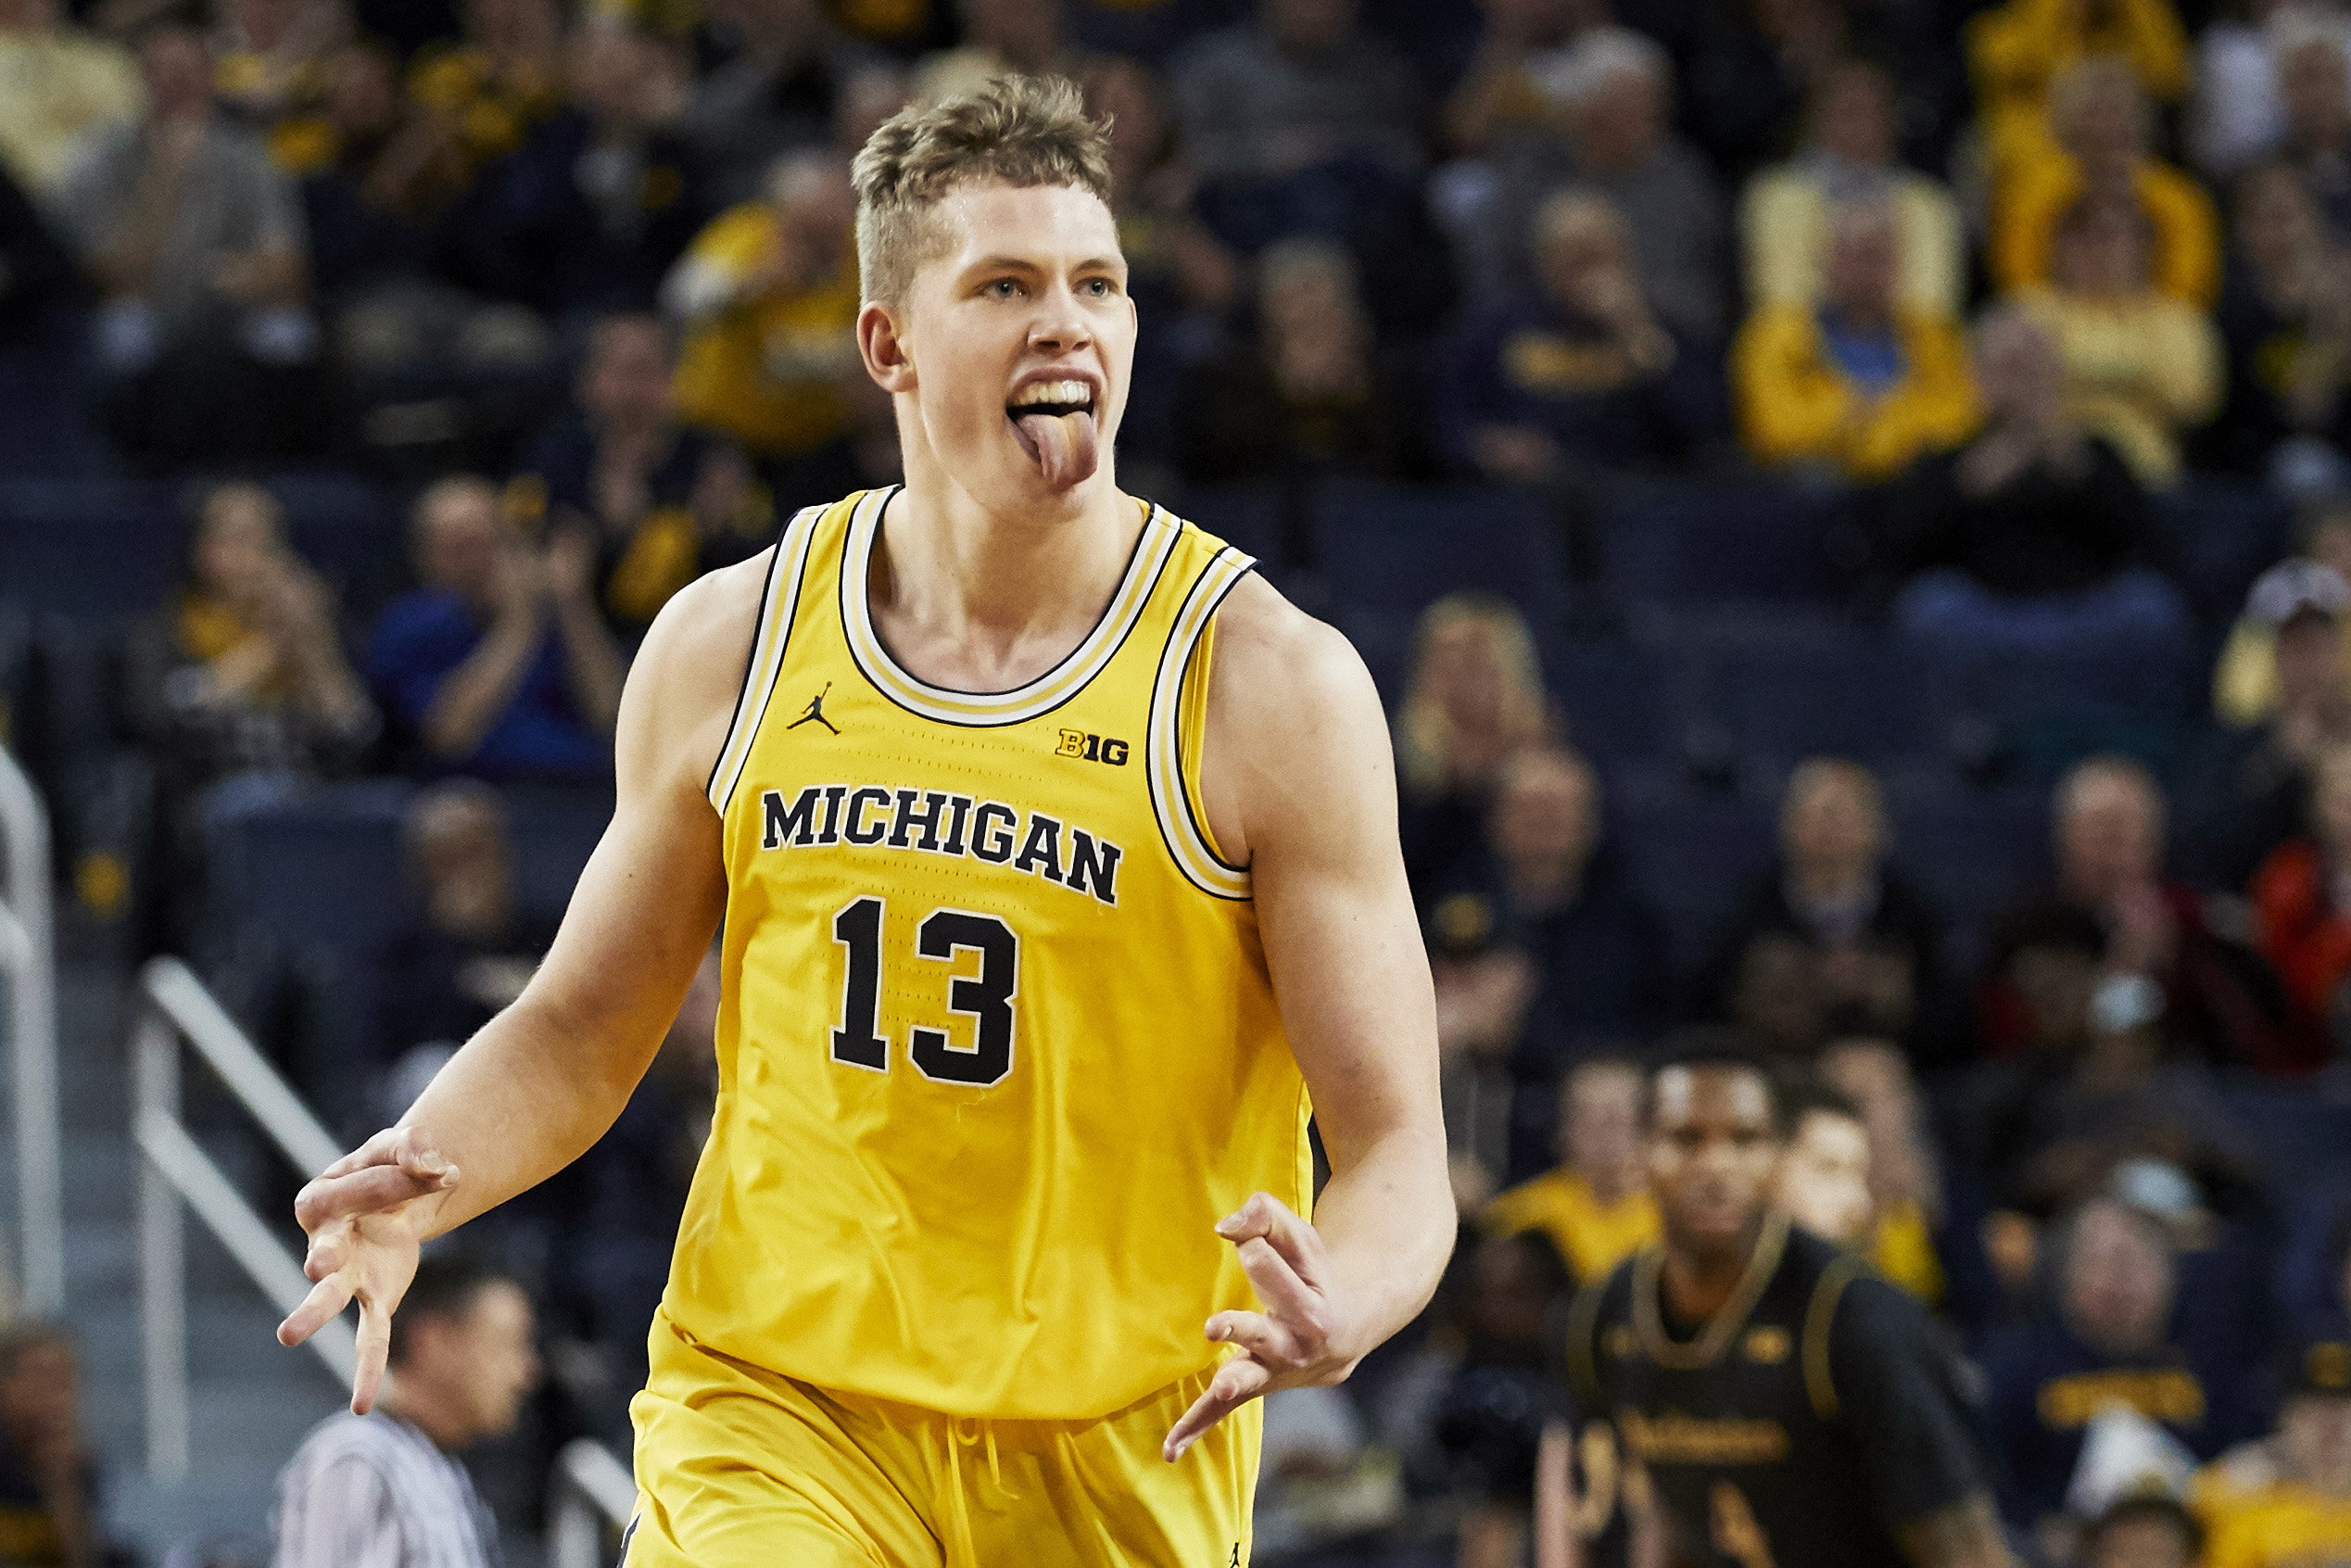 Michigan Basketball Maize n BrewMichigan Basketball